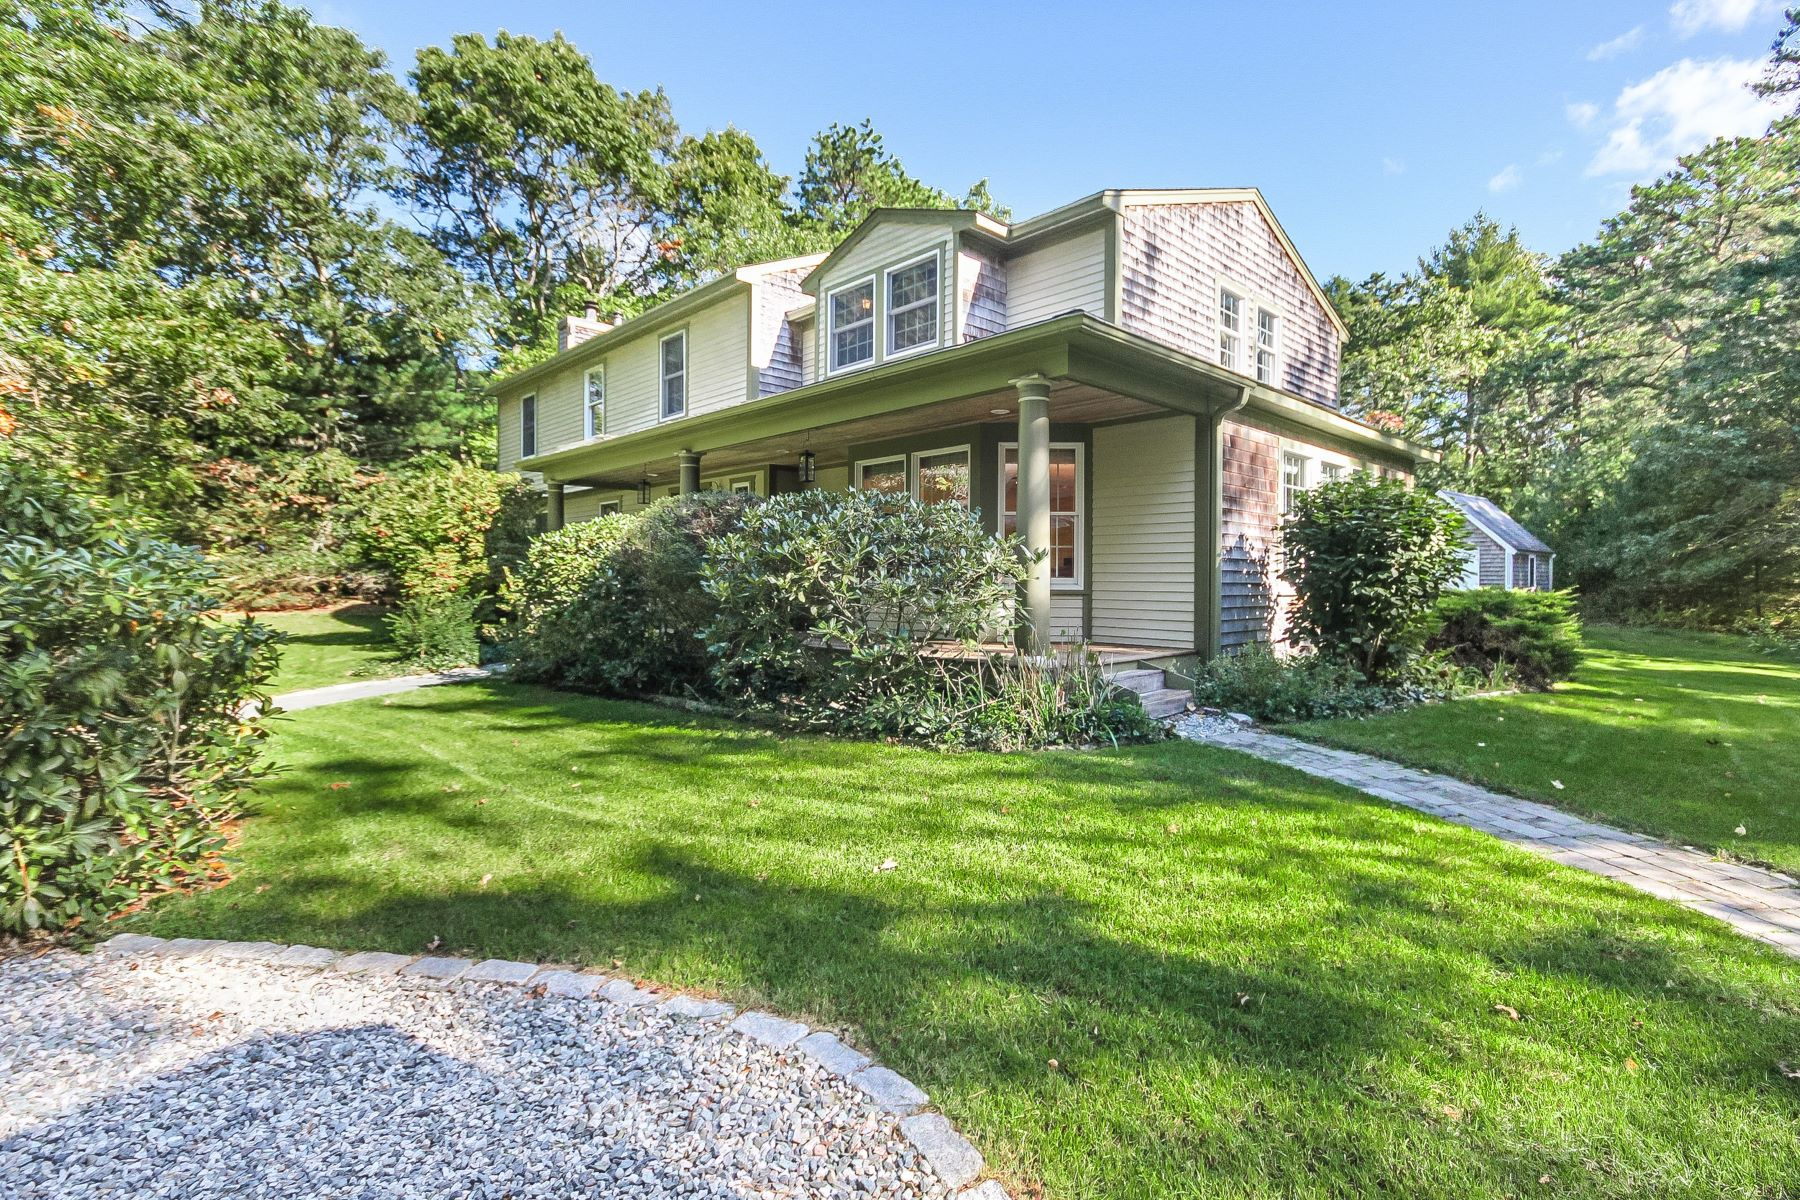 Single Family Home for Sale at 91 Black Pond Rd, Charlestown, RI 91 Black Pond Rd Charlestown, Rhode Island 02813 United States